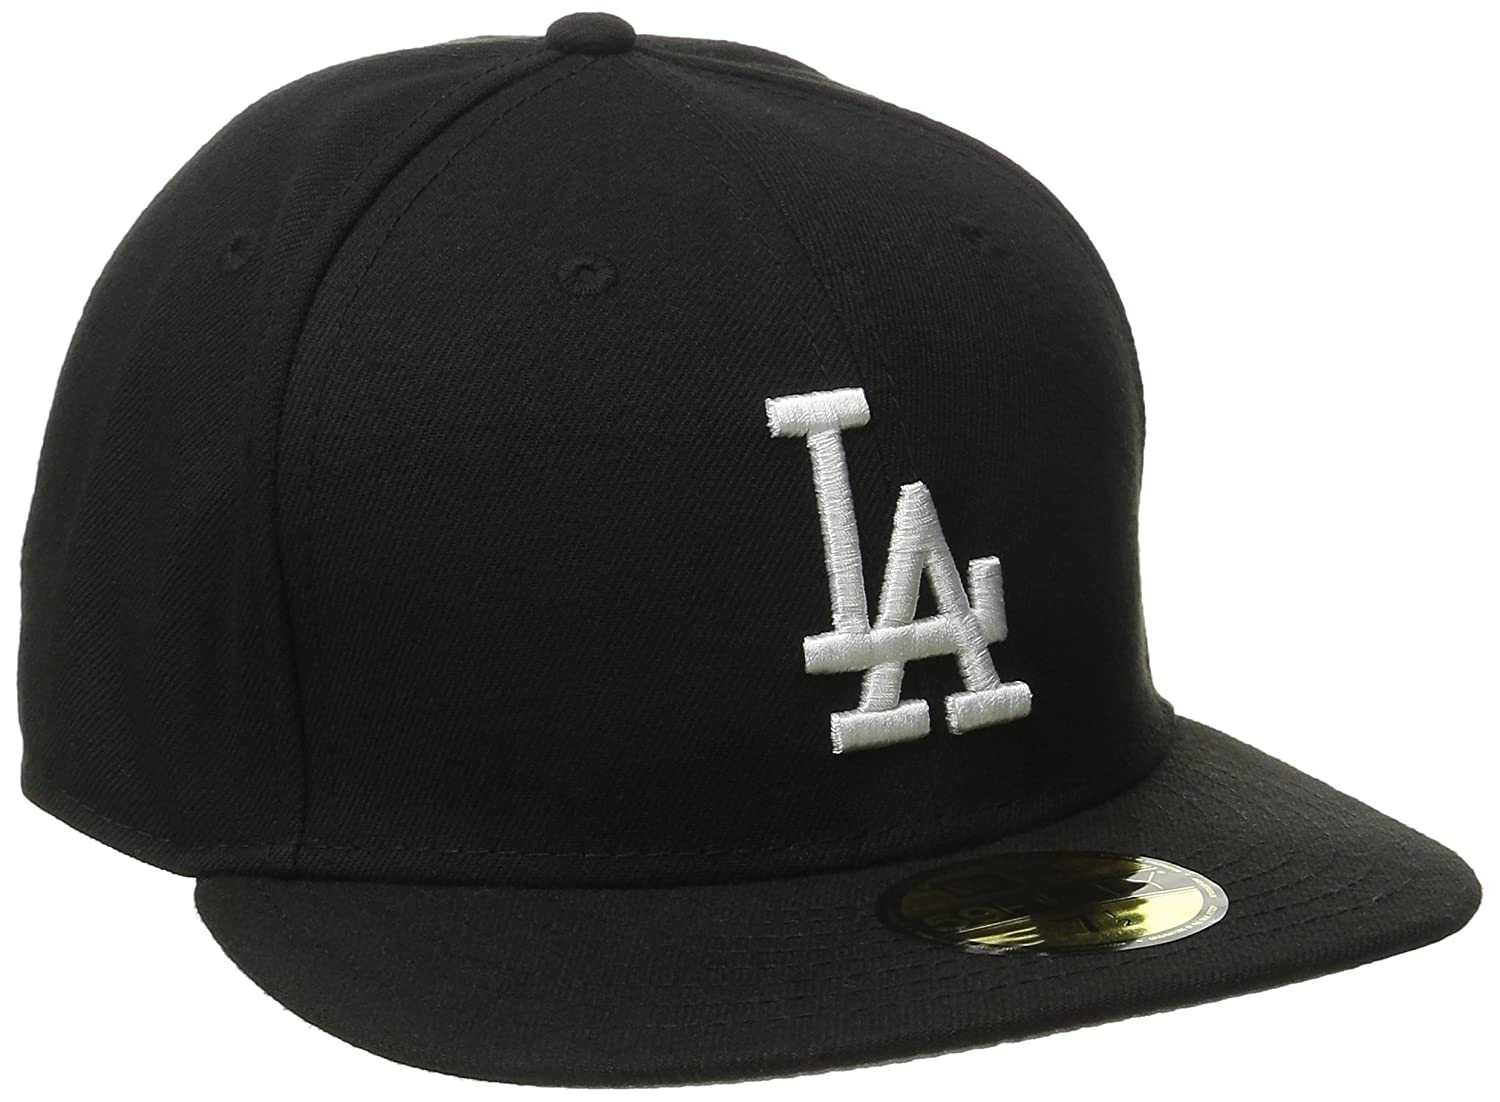 54d82d9a229 New Era MLB LA Dodgers 59Fifty Cap  New Era  Amazon.co.uk  Sports   Outdoors